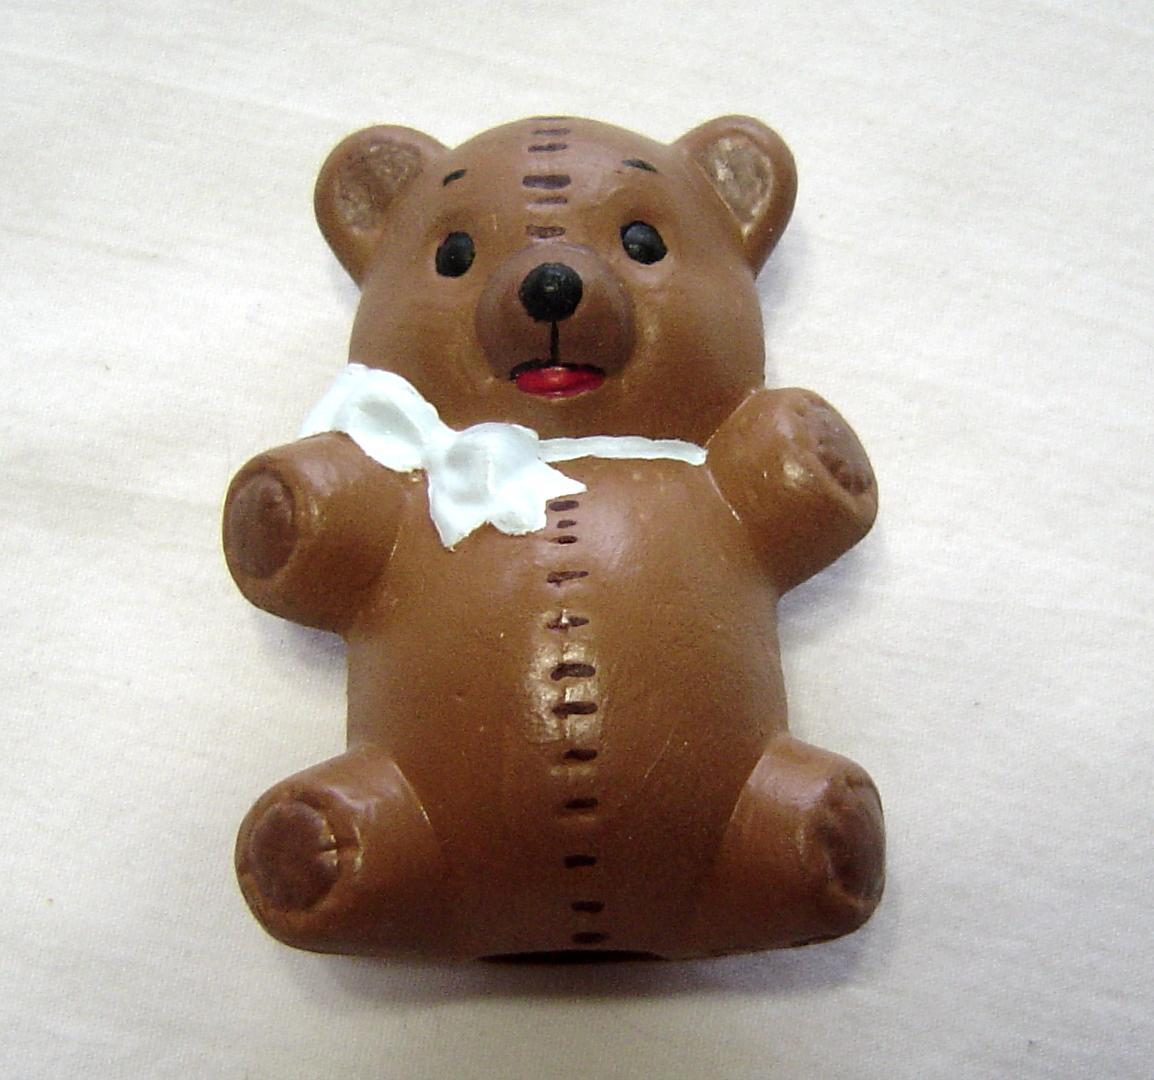 Primary image for  Miniature Teddy Bear Brown with White Bow Ceramic